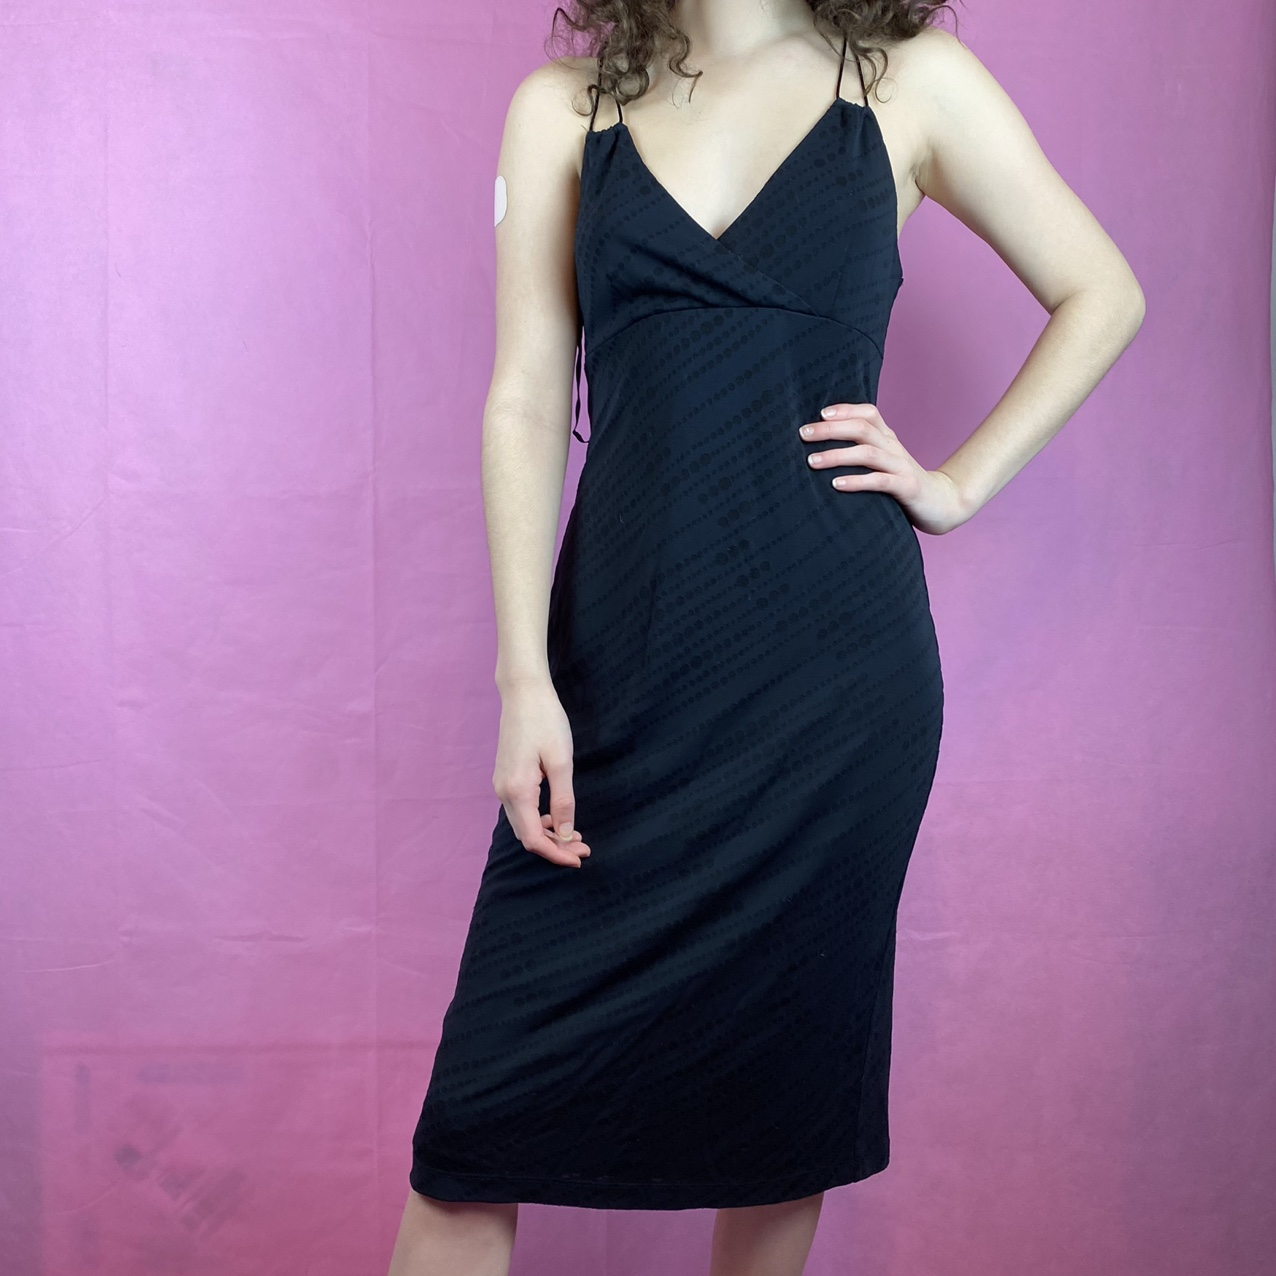 Product Image 1 - Vintage 90s Express Black Dress🖤 Features